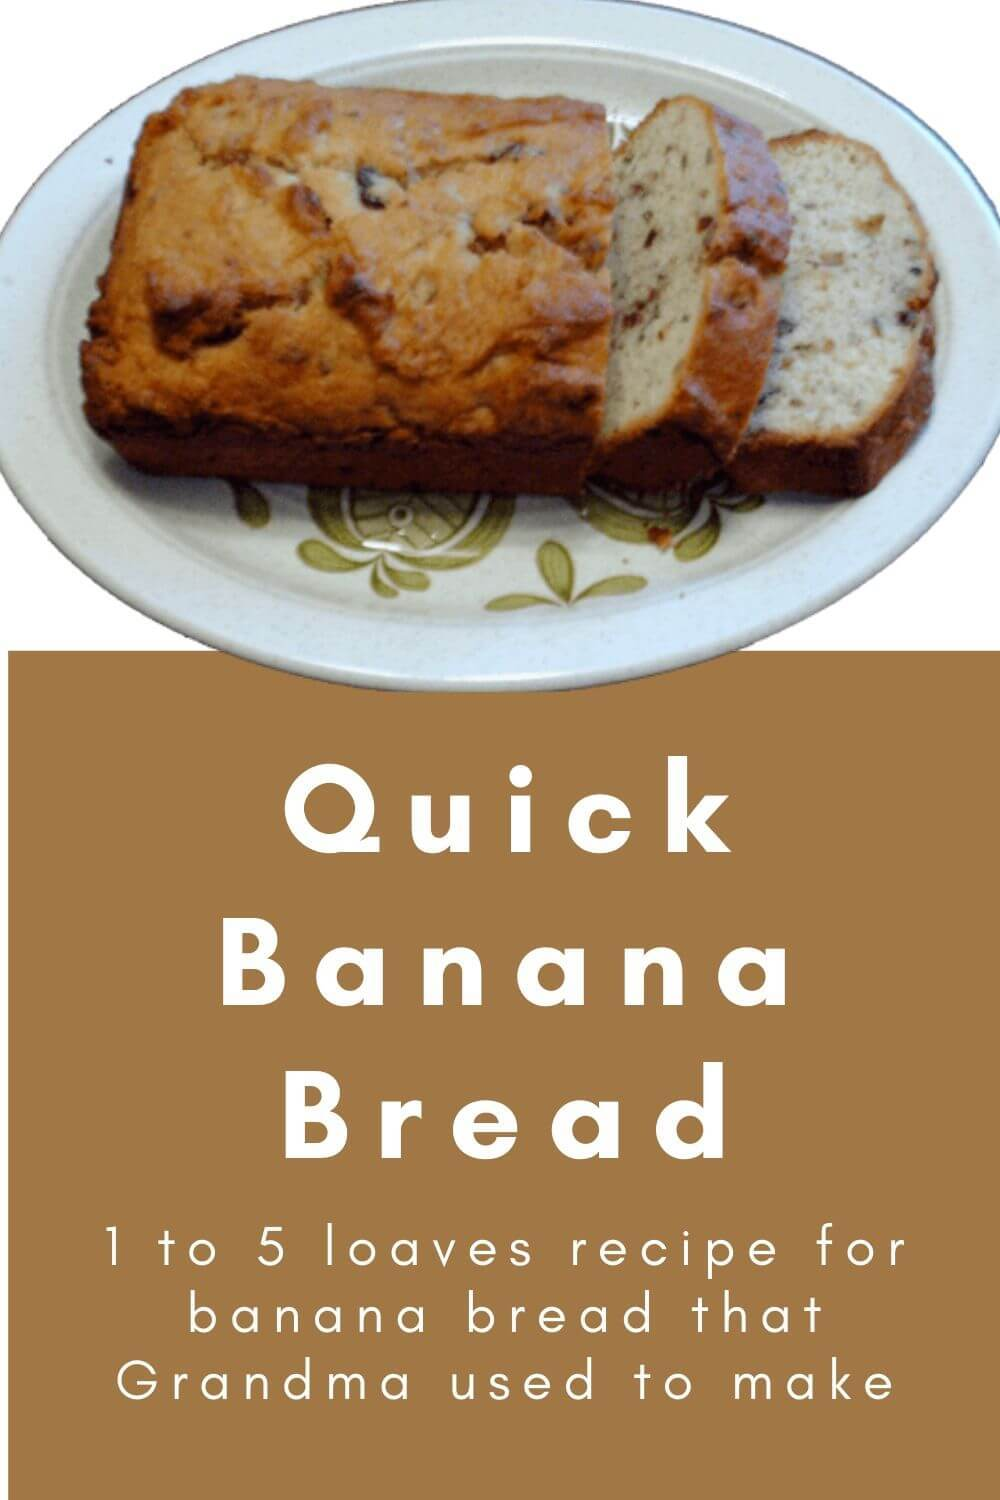 Quick Banana Bread - that grandma used to make